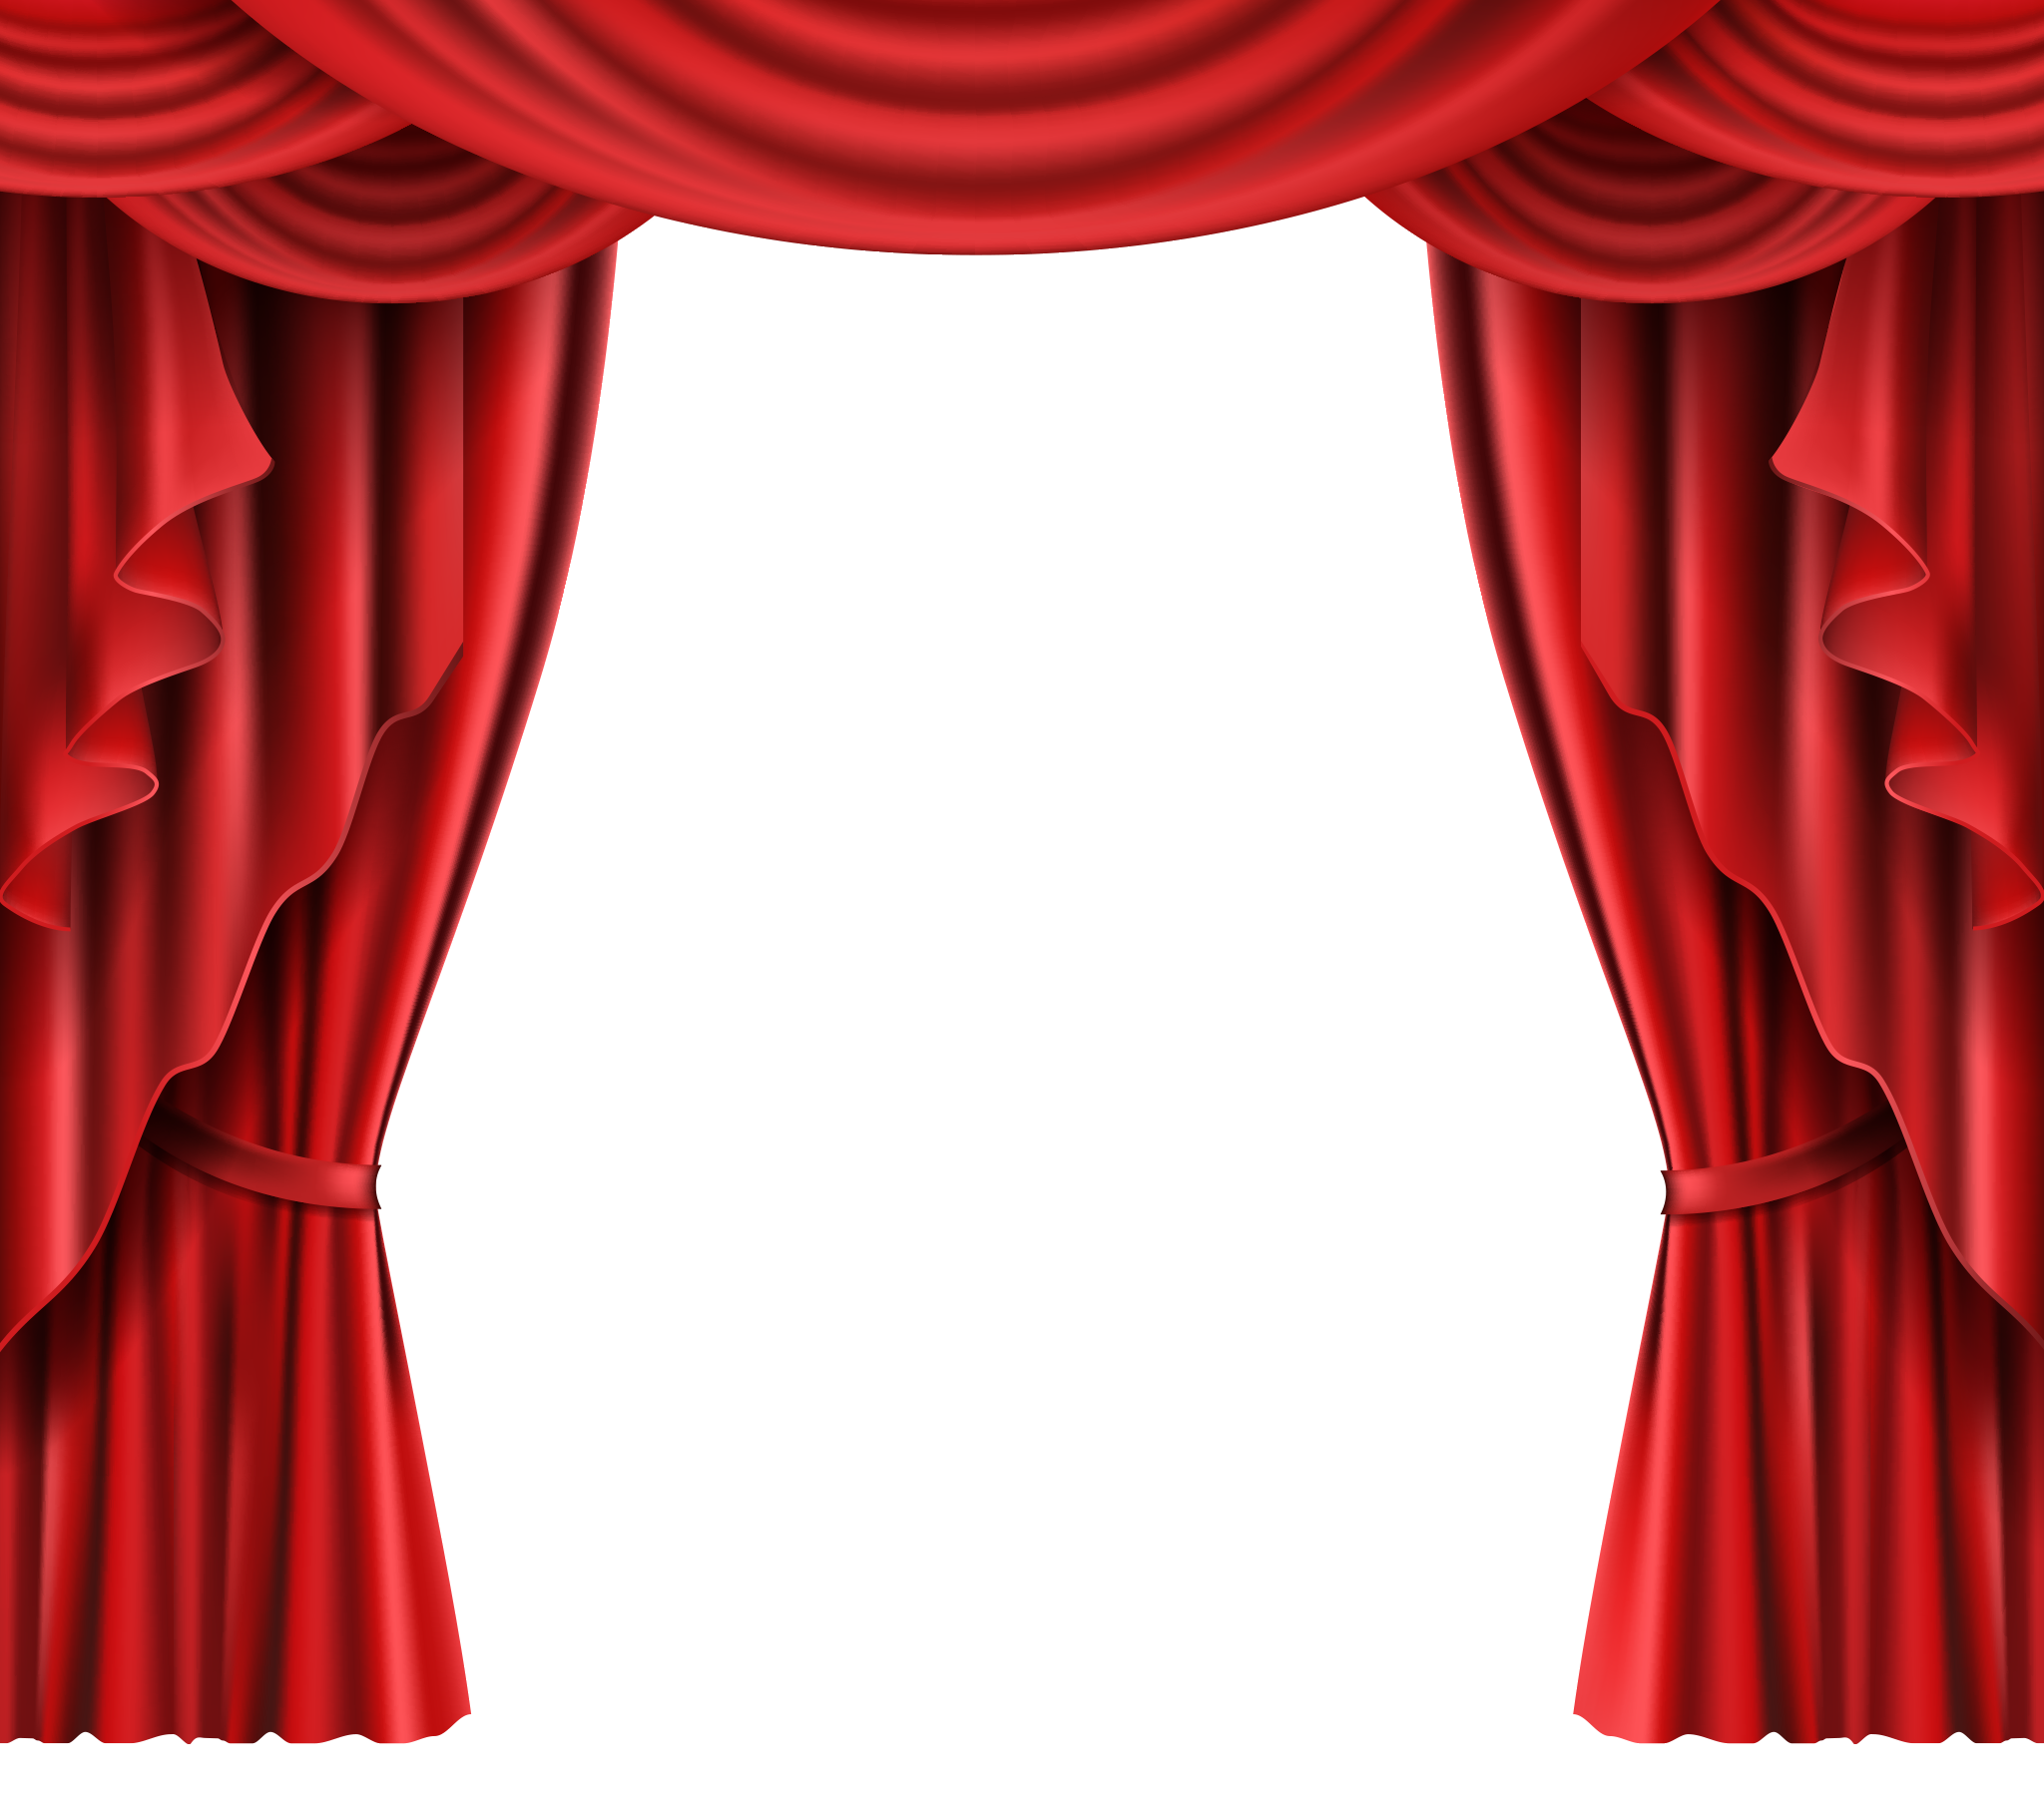 Red stage curtains png. Theater hd image free